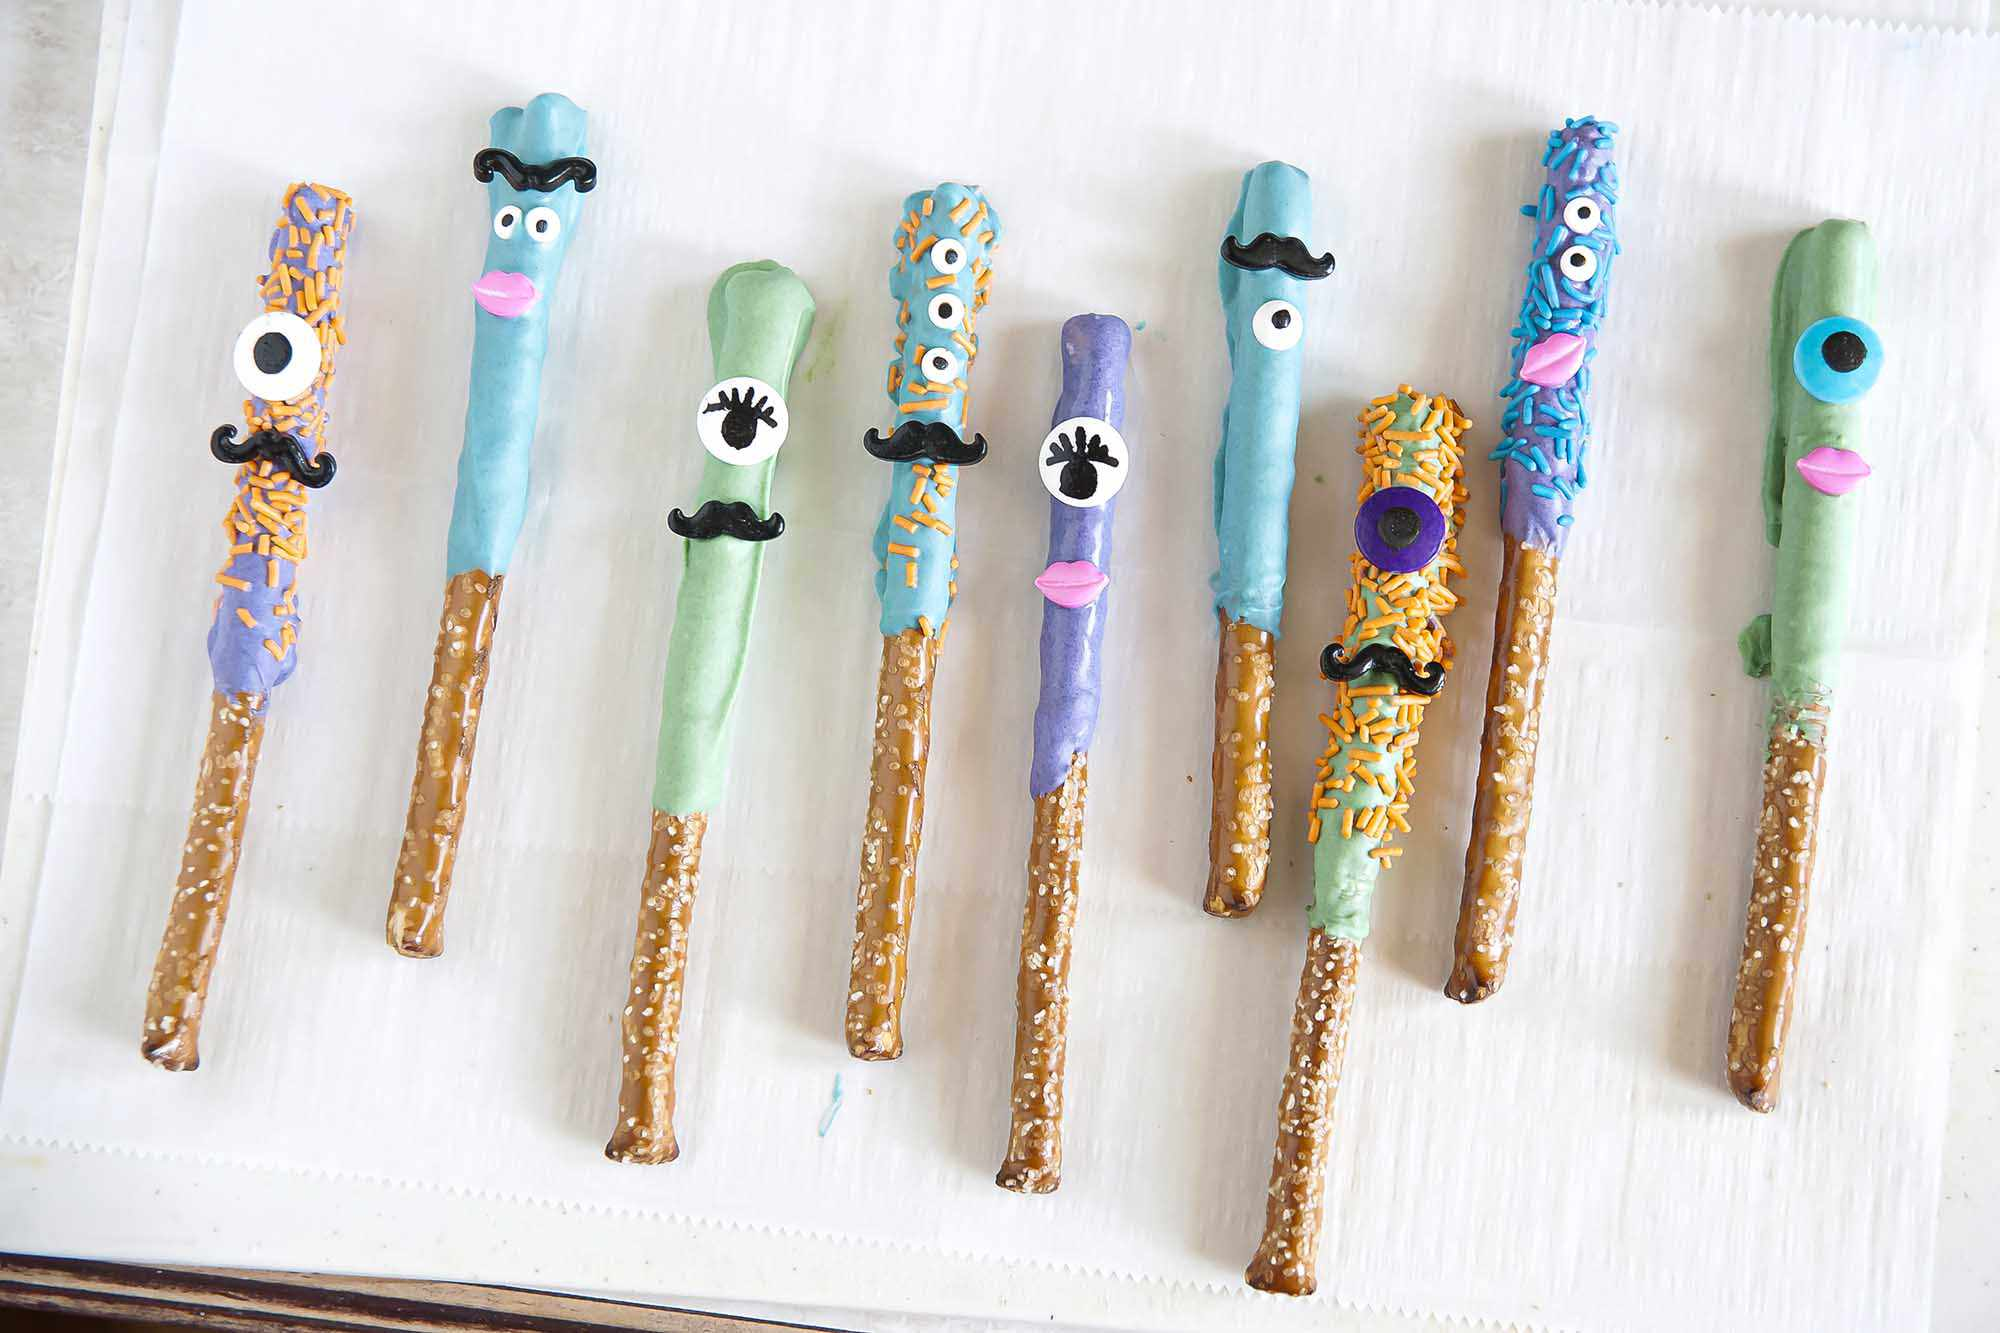 Homemade Chocolate dipped pretzel rods in blue, green and purple decorated with canyd eyes, mustaches and lips on a counter top.